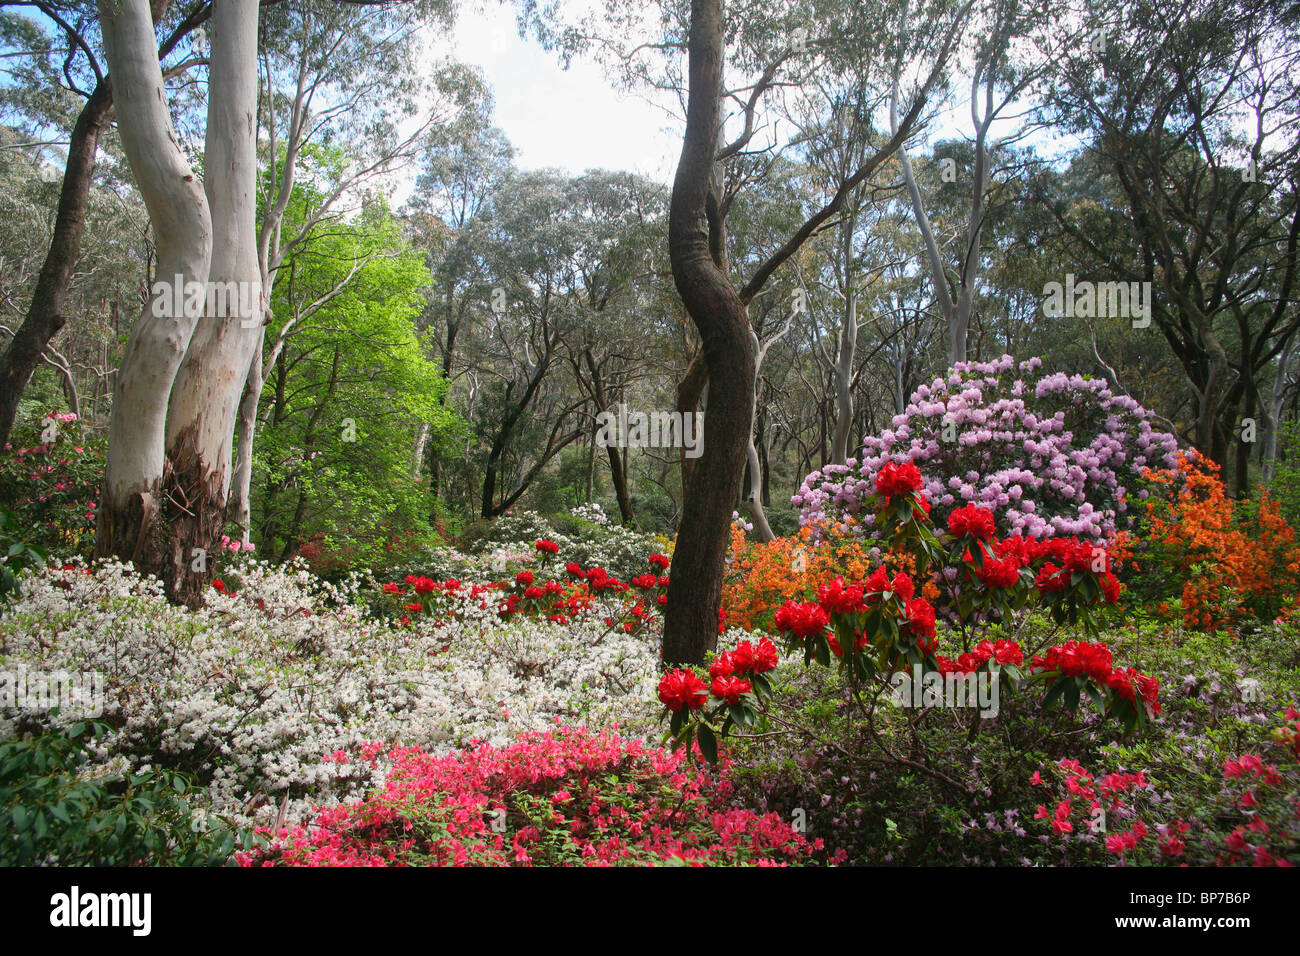 Spring flowers amid the australian bush in blackheath rhododendron spring flowers amid the australian bush in blackheath rhododendron gardens in the blue mountains of nsw mightylinksfo